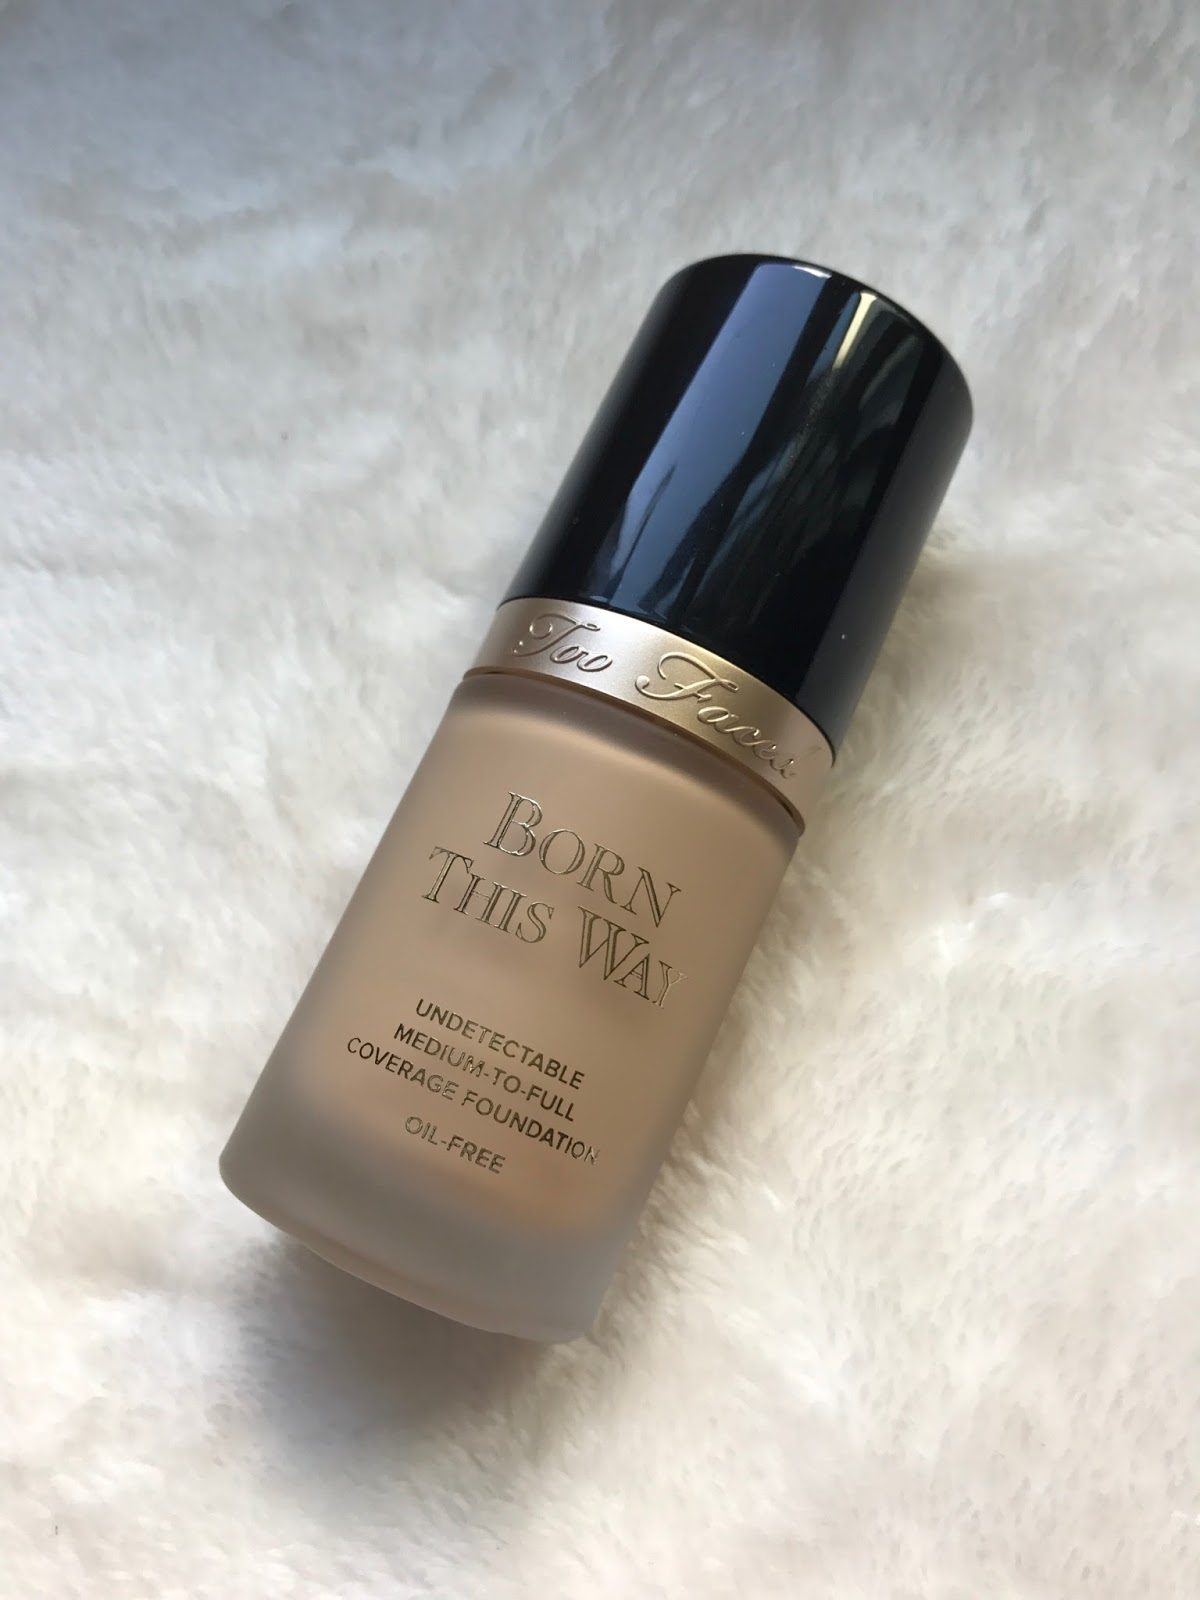 Beauty continued are you using the right foundation if you have oily skin most liquid foundations will look too shiny and youll find yourself constantly reaching for blotting powder throughout the day solutioingenieria Choice Image